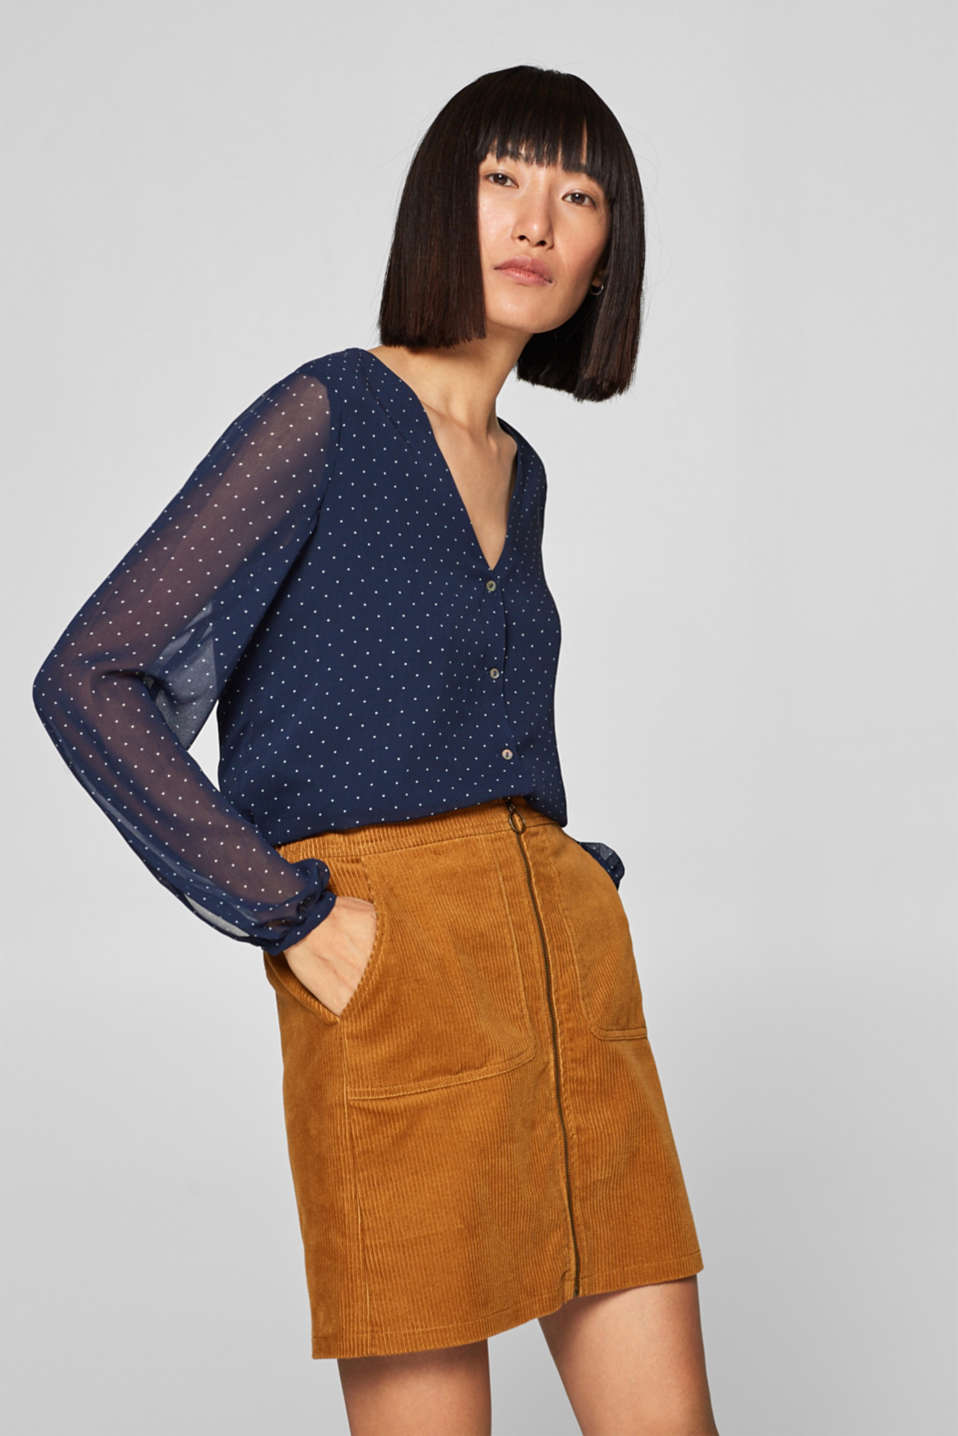 Esprit - Chiffon blouse with a polka dot print